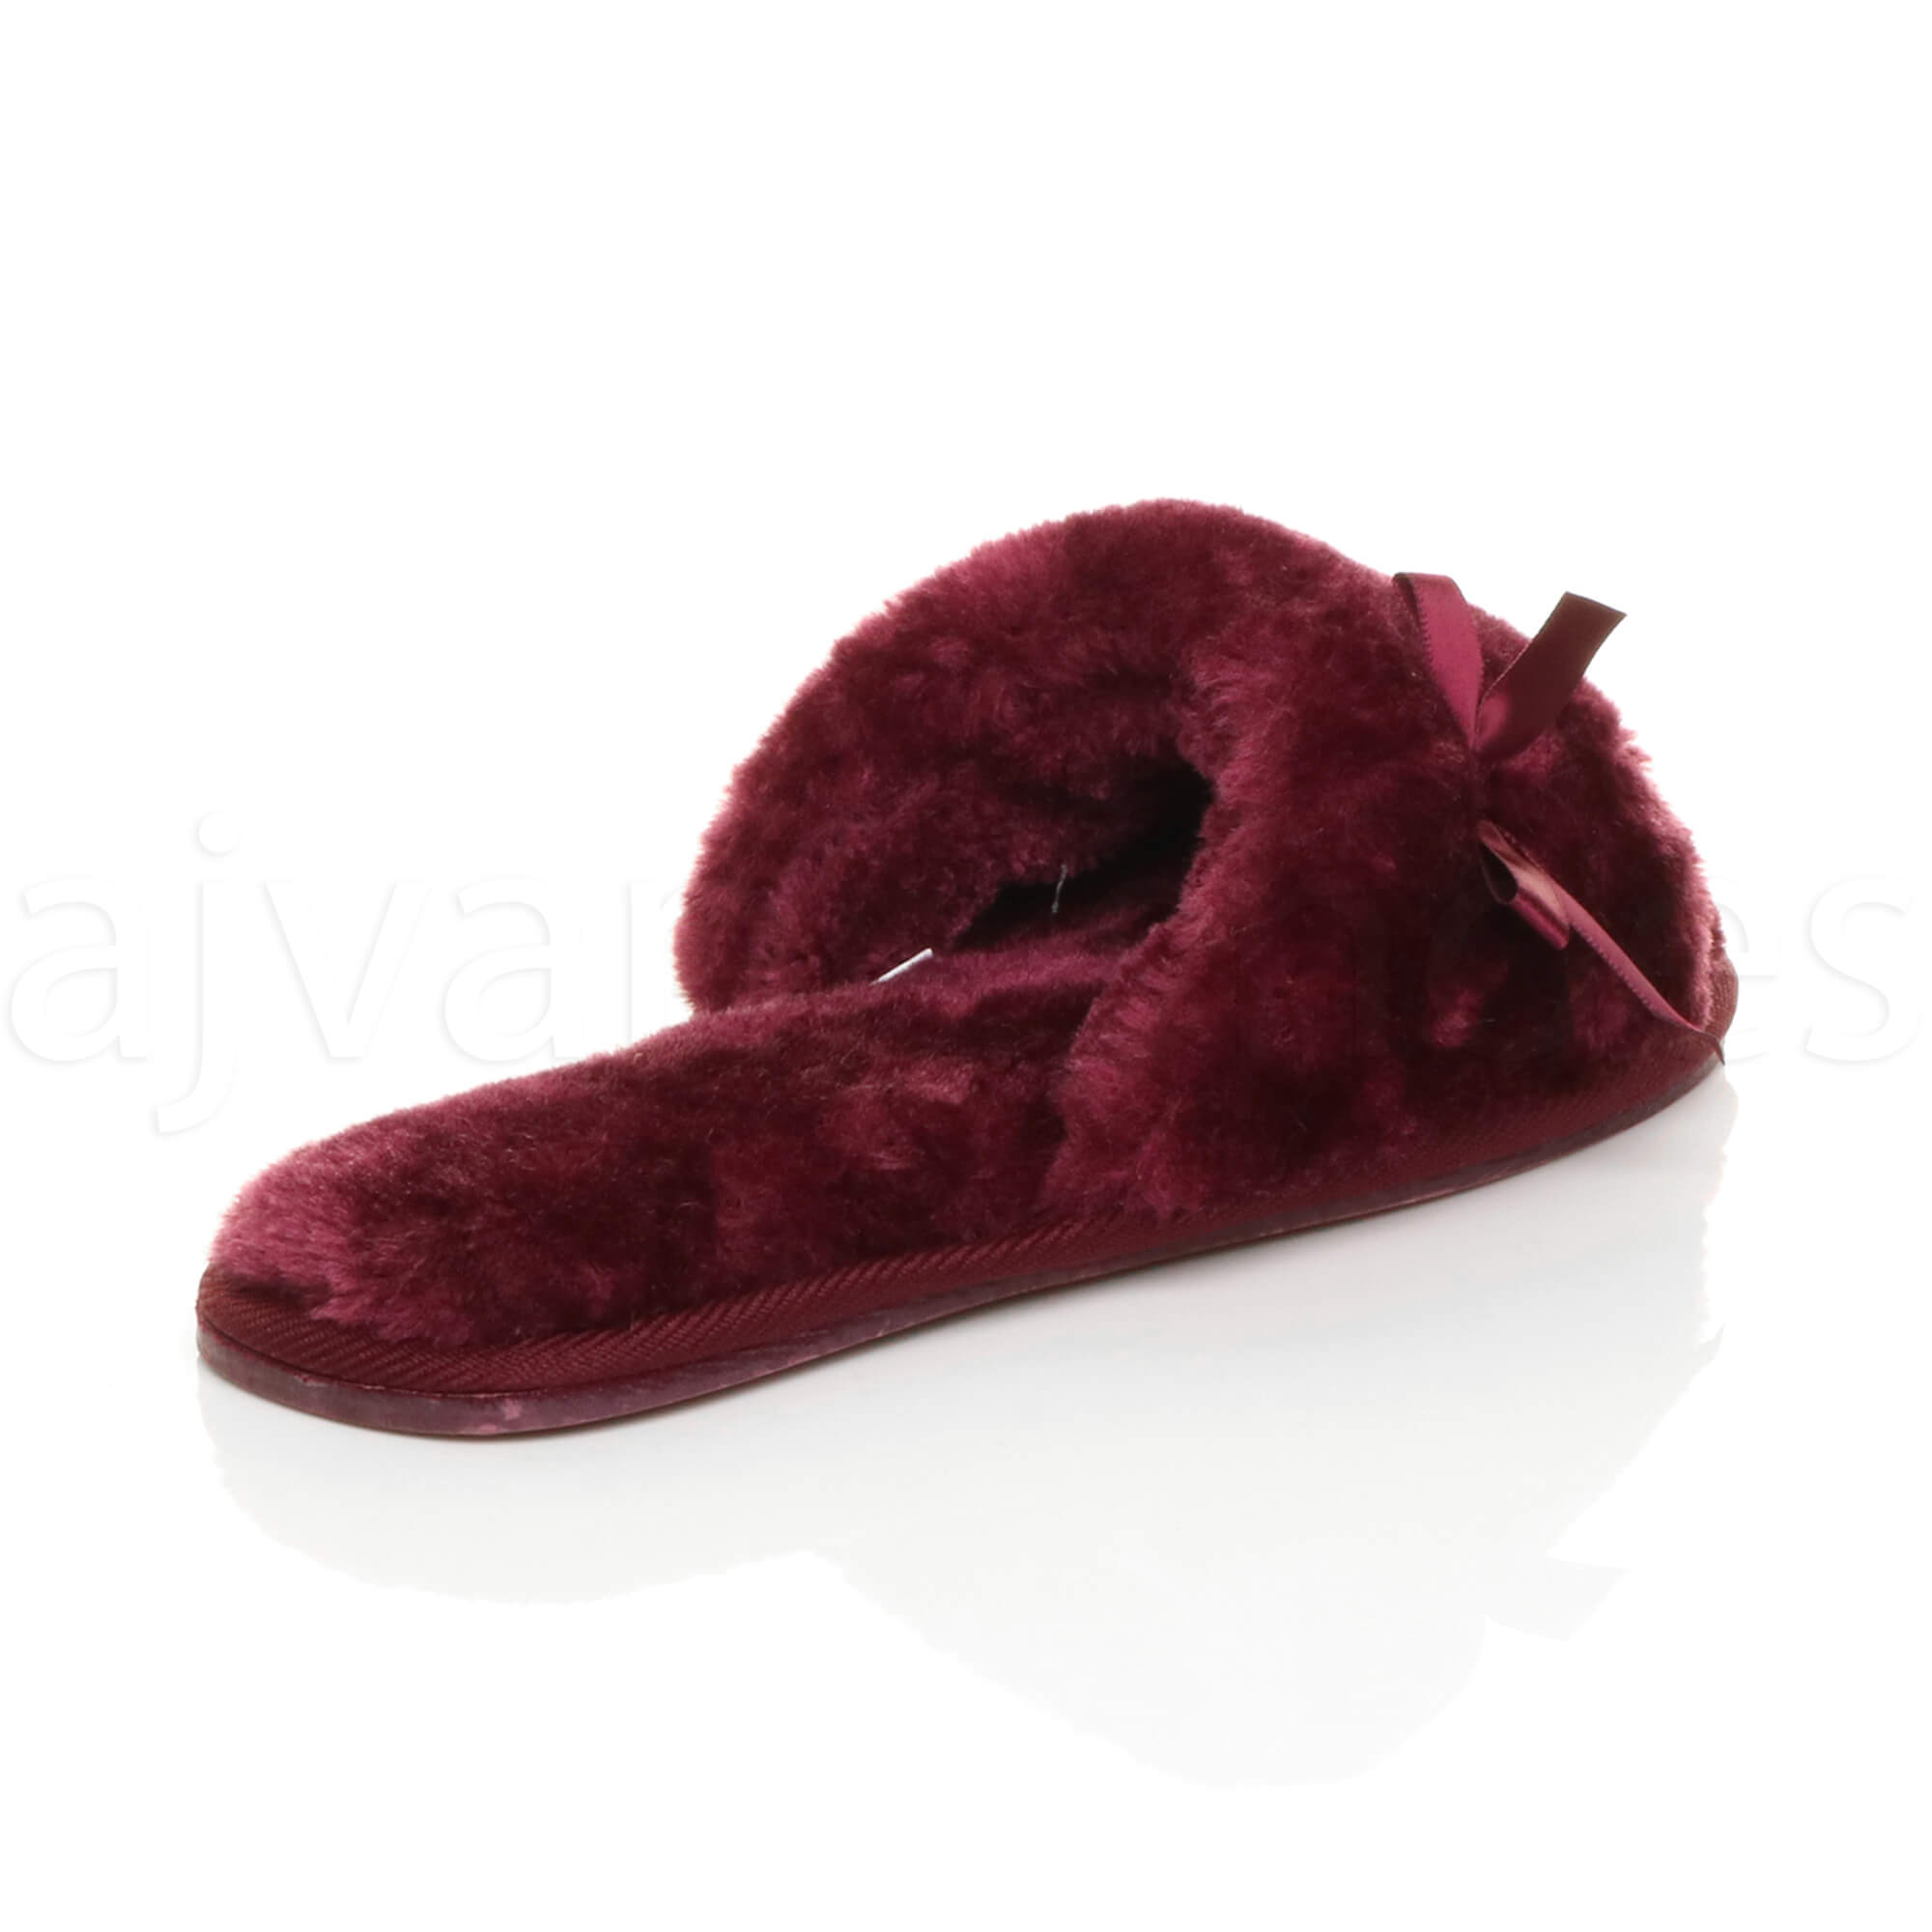 WOMENS-LADIES-FLAT-PEEP-TOE-BOW-LUXURY-COSY-FUR-LINED-SLIP-ON-SLIPPERS-SIZE thumbnail 21